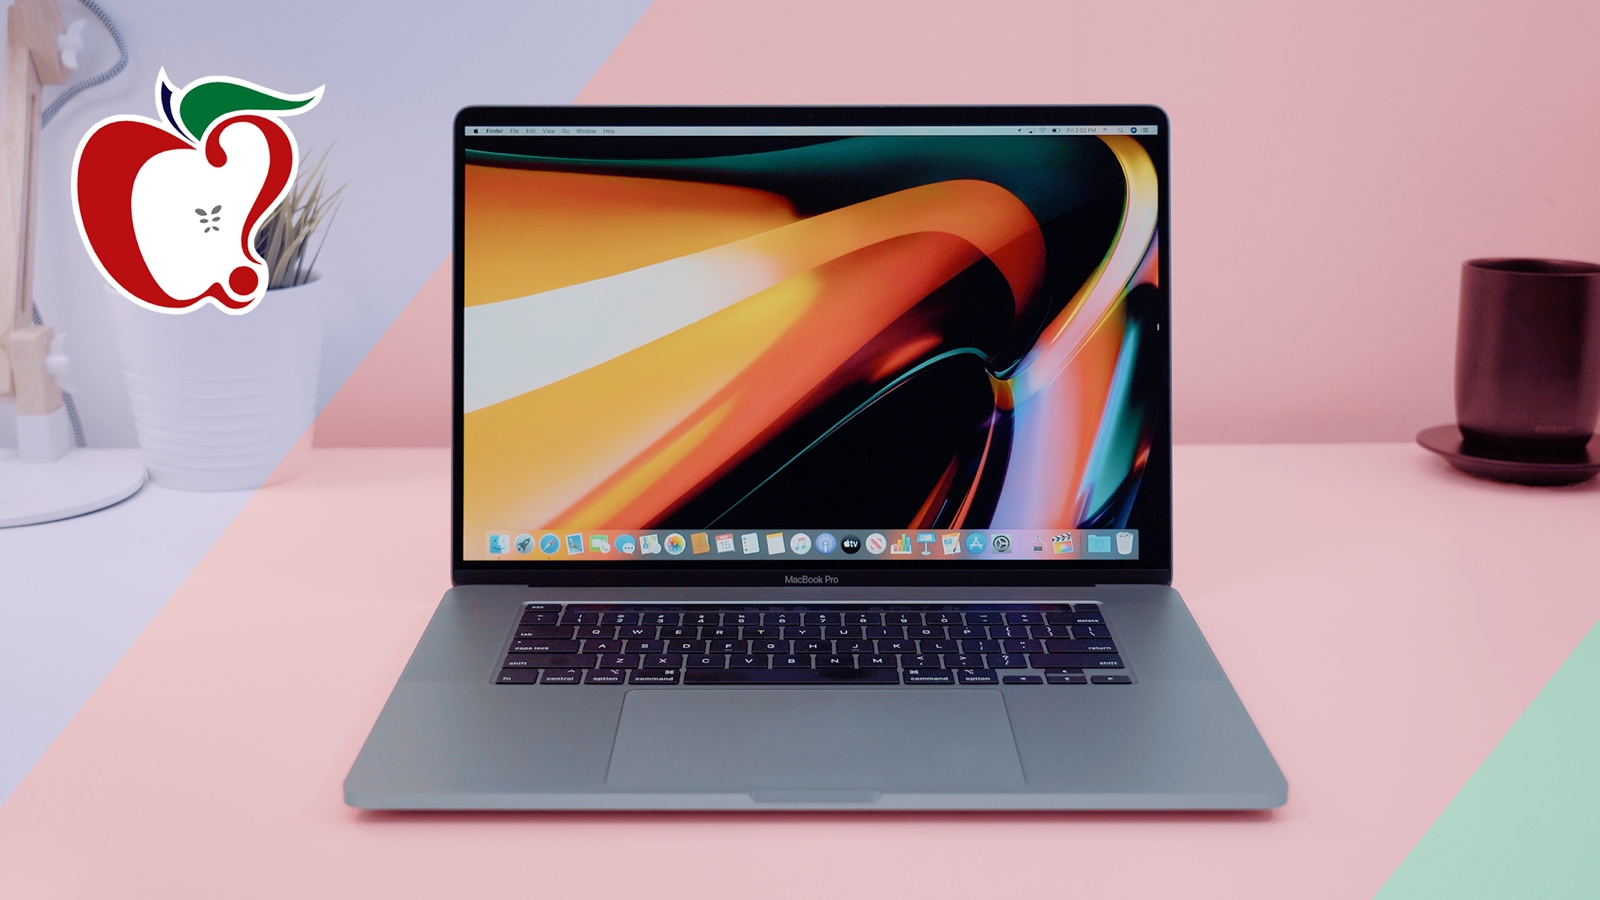 Hands-On With Apple's New 16-Inch MacBook Pro